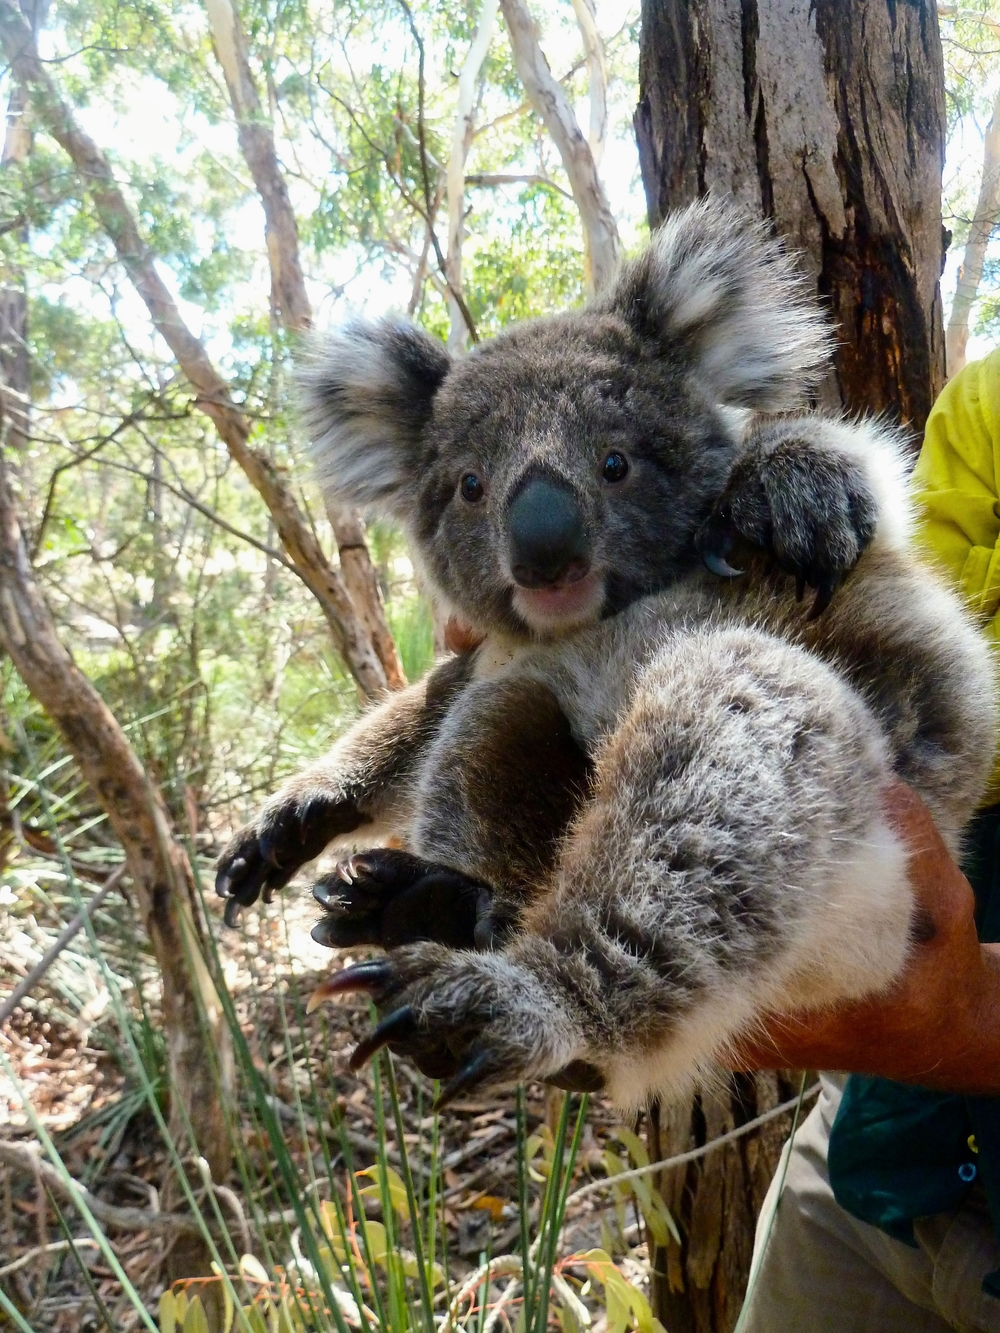 Kangaroo Island's koalas are sterilised and released to preserve native trees and prevent unwanted culling.